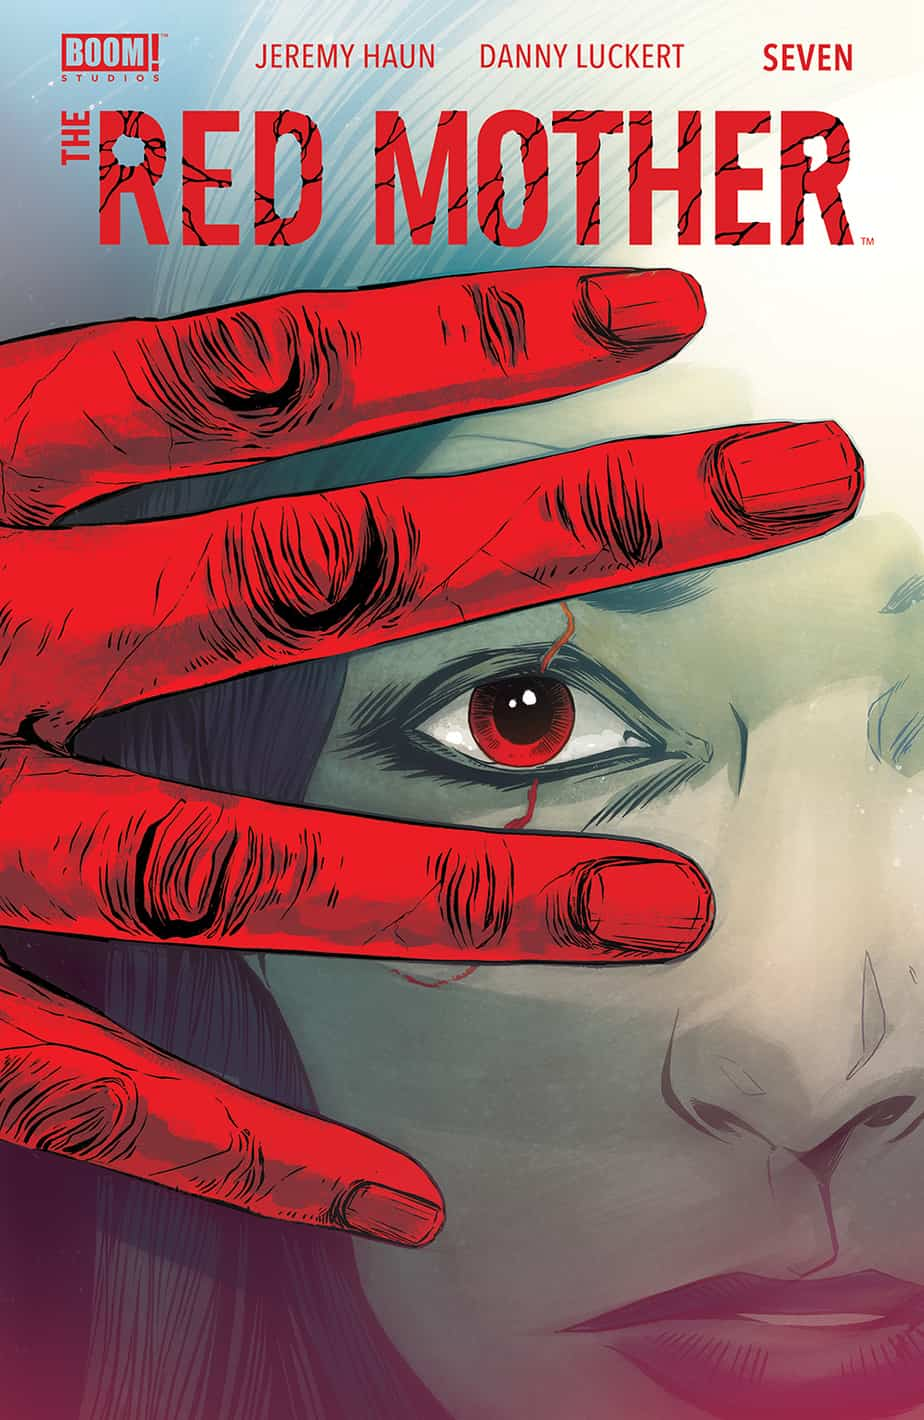 THE RED MOTHER #7 - Main Cover